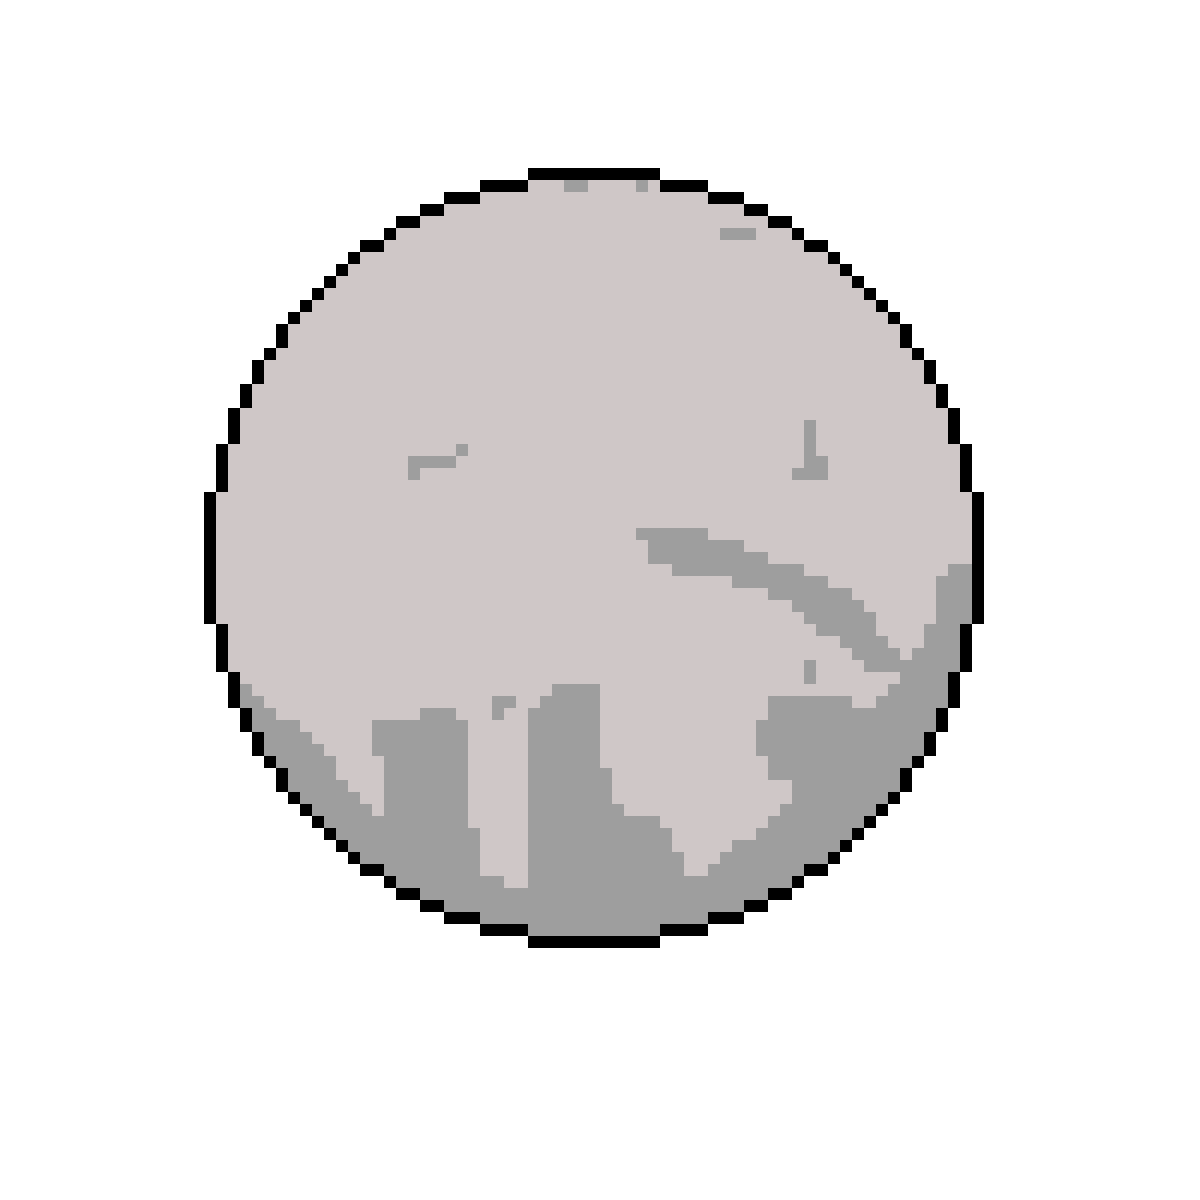 Destiny traveler png. Pixilart the from by